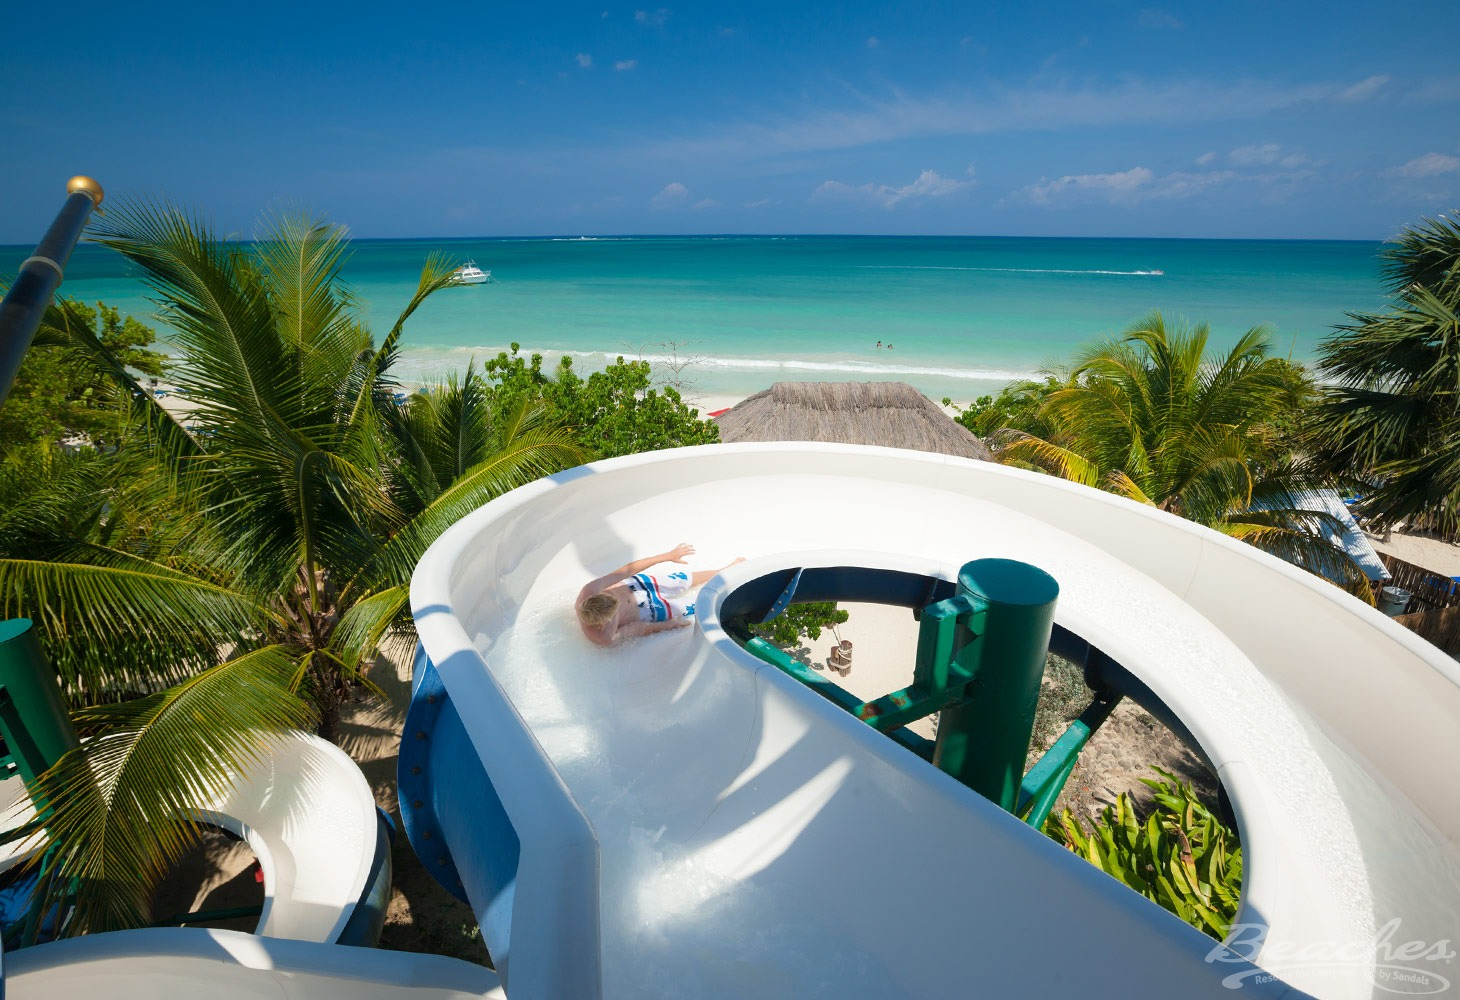 water slides overlooking ocean at Beaches Negril